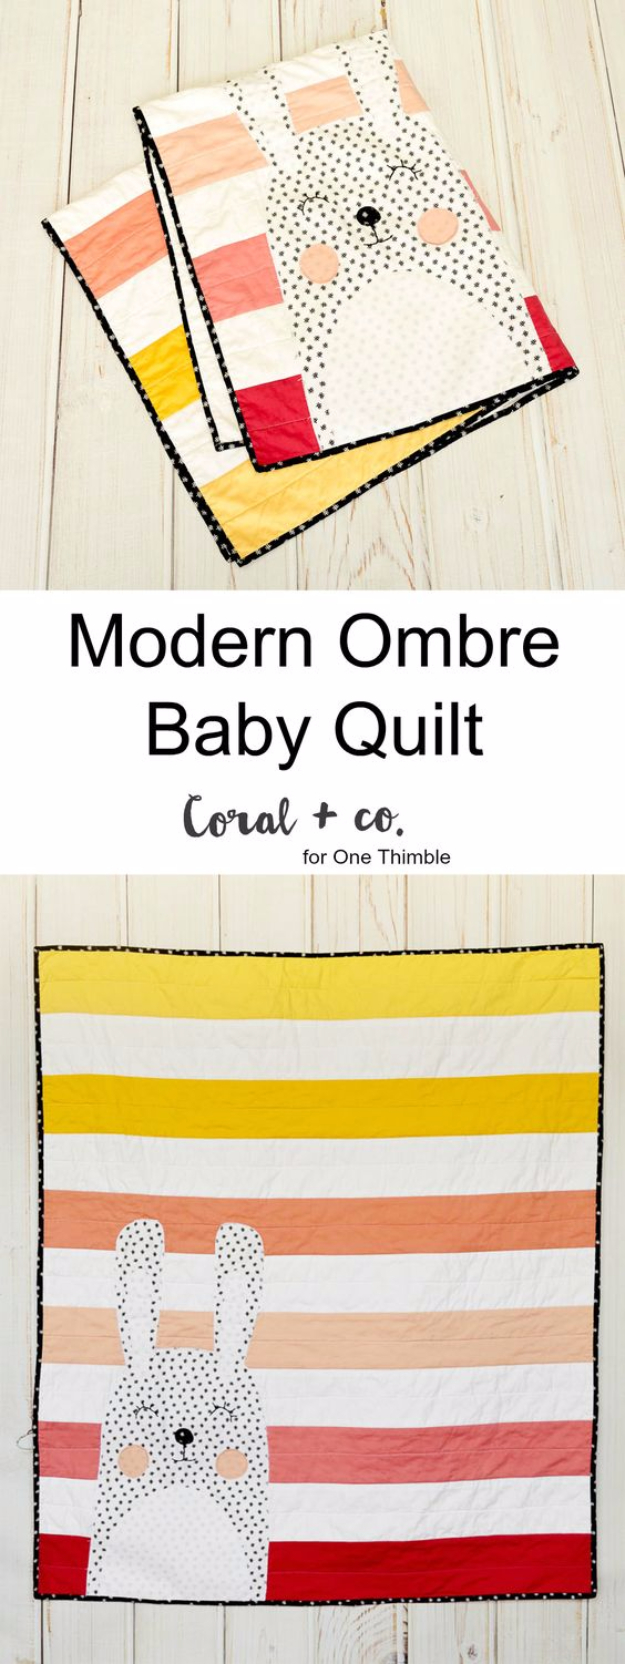 51 Things to Sew for Baby - Modern Ombre Baby Quilt - Cool Gifts For Baby, Easy Things To Sew And Sell, Quick Things To Sew For Baby, Easy Baby Sewing Projects For Beginners, Baby Items To Sew And Sell #baby #diy #diygifts